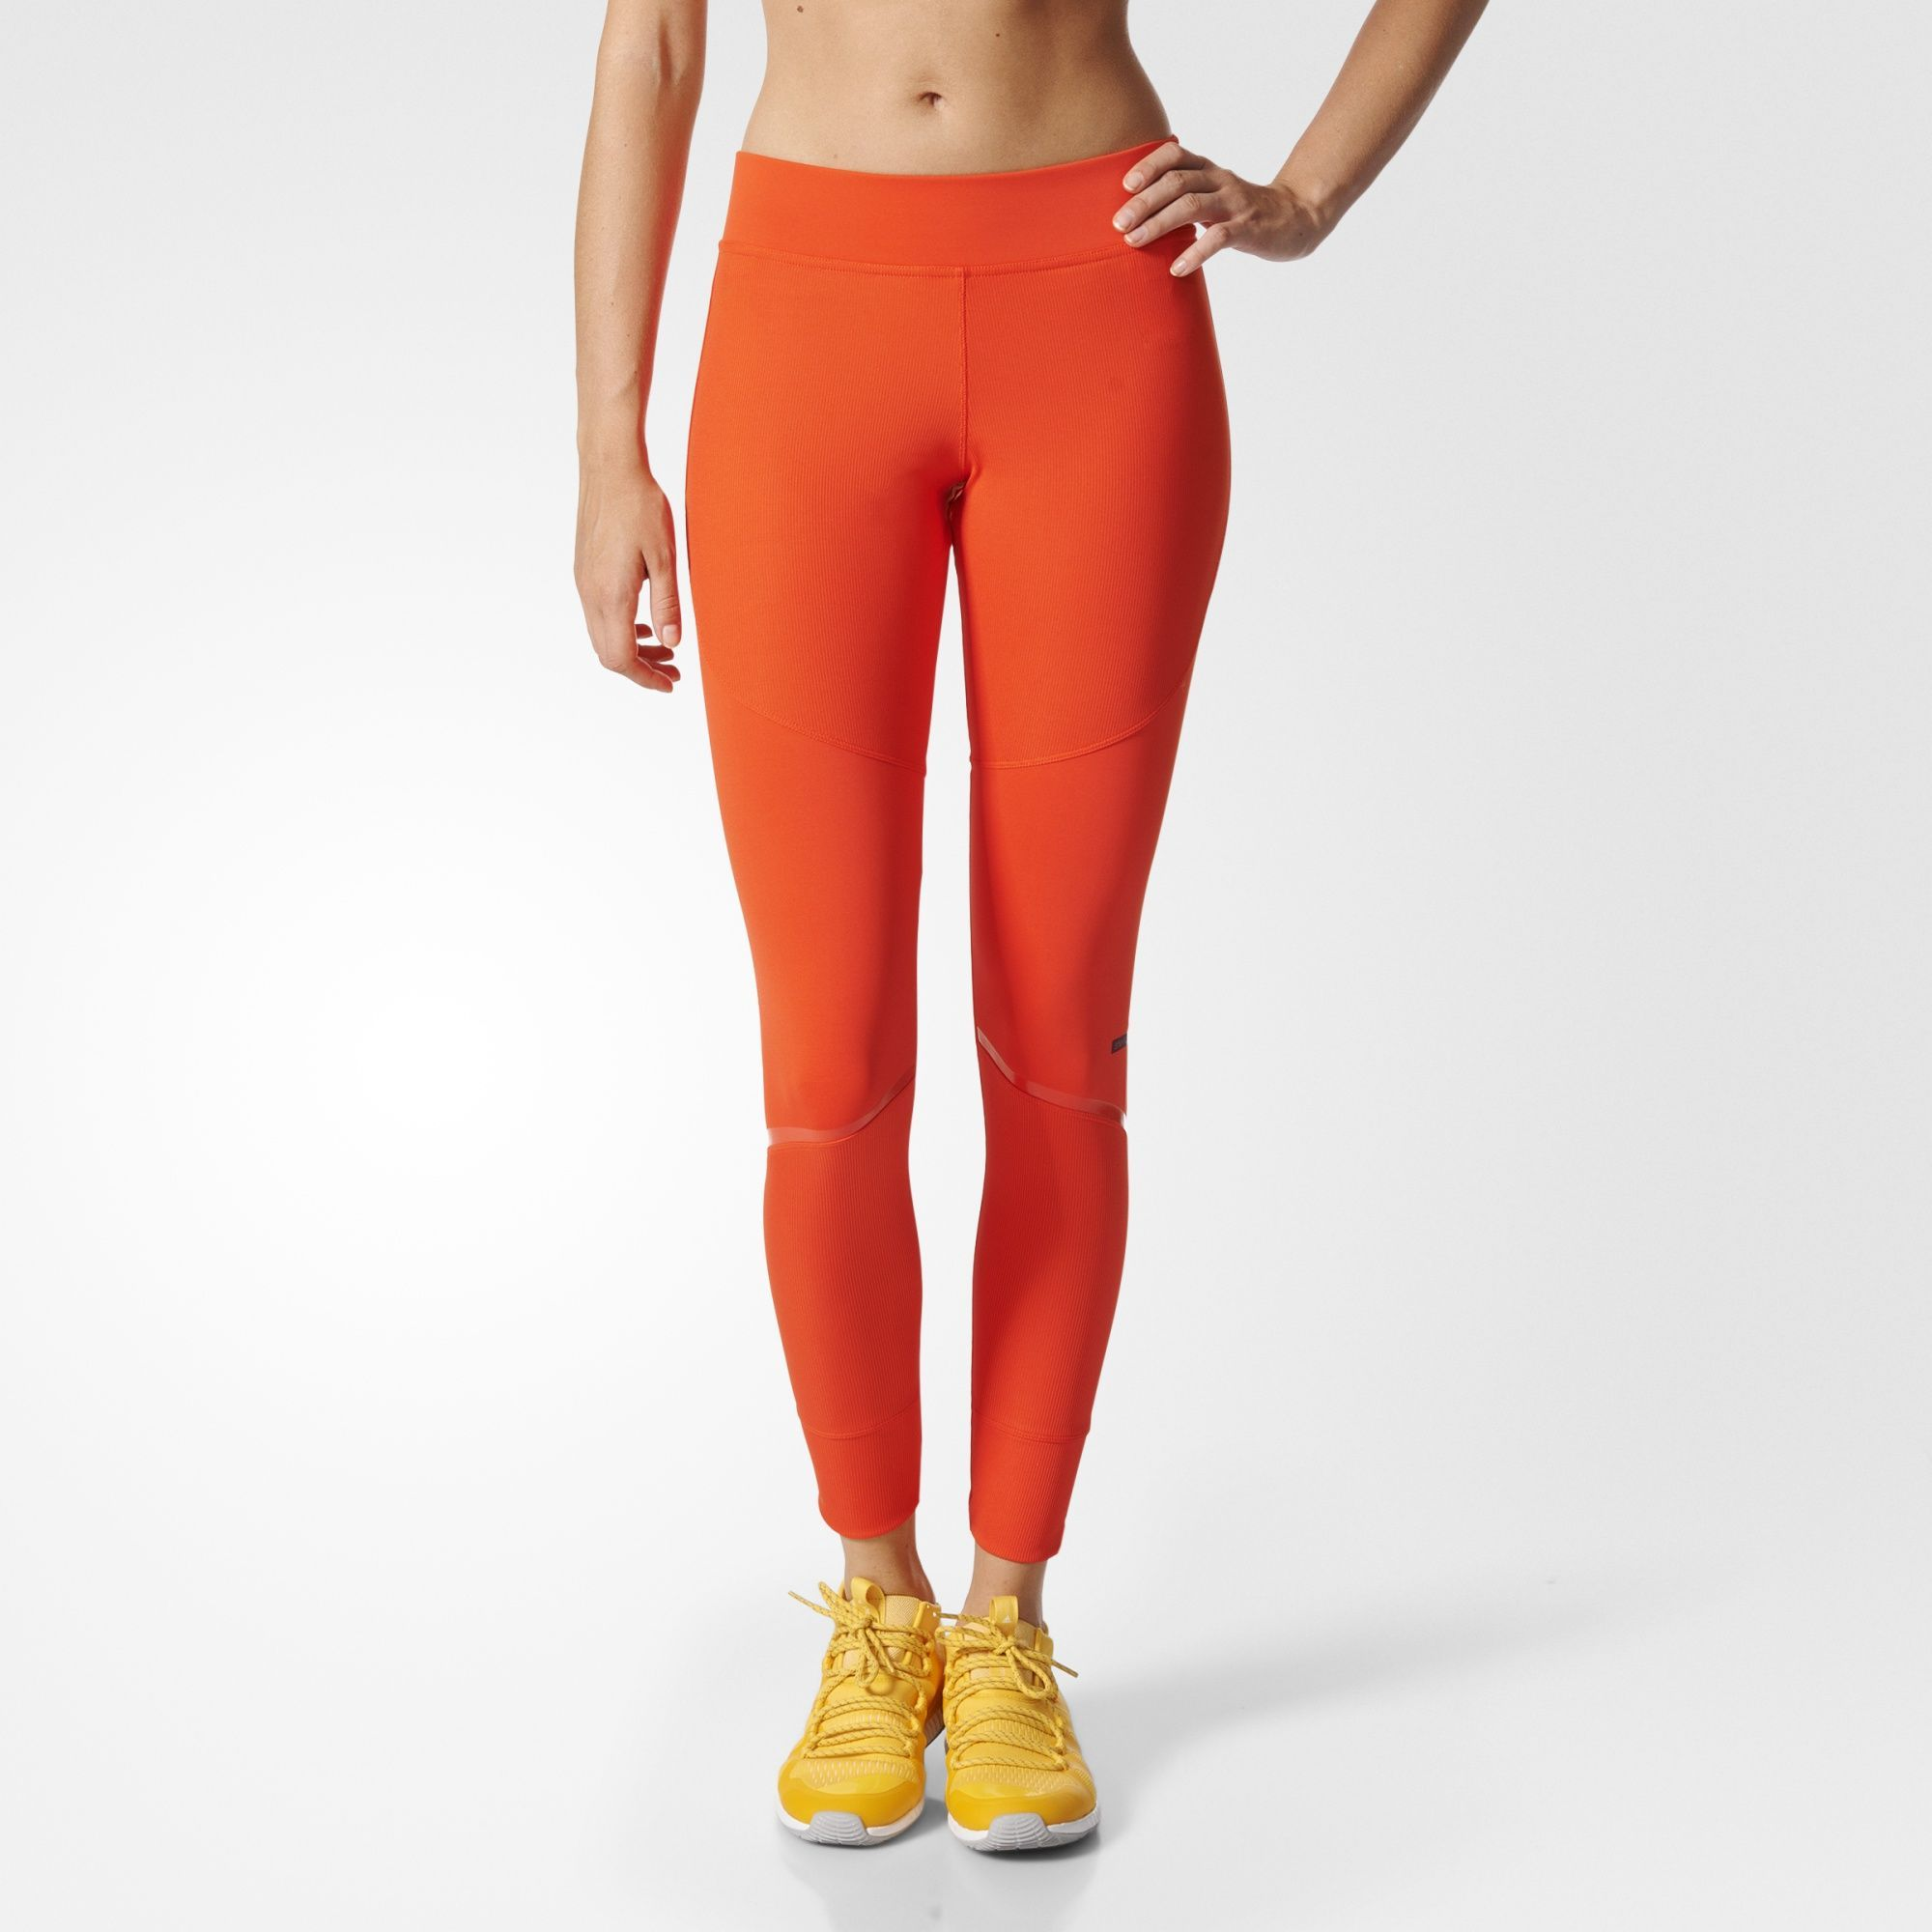 The adidas by by by Stella McCartney Training Tank Top gives a secure 6e74e0